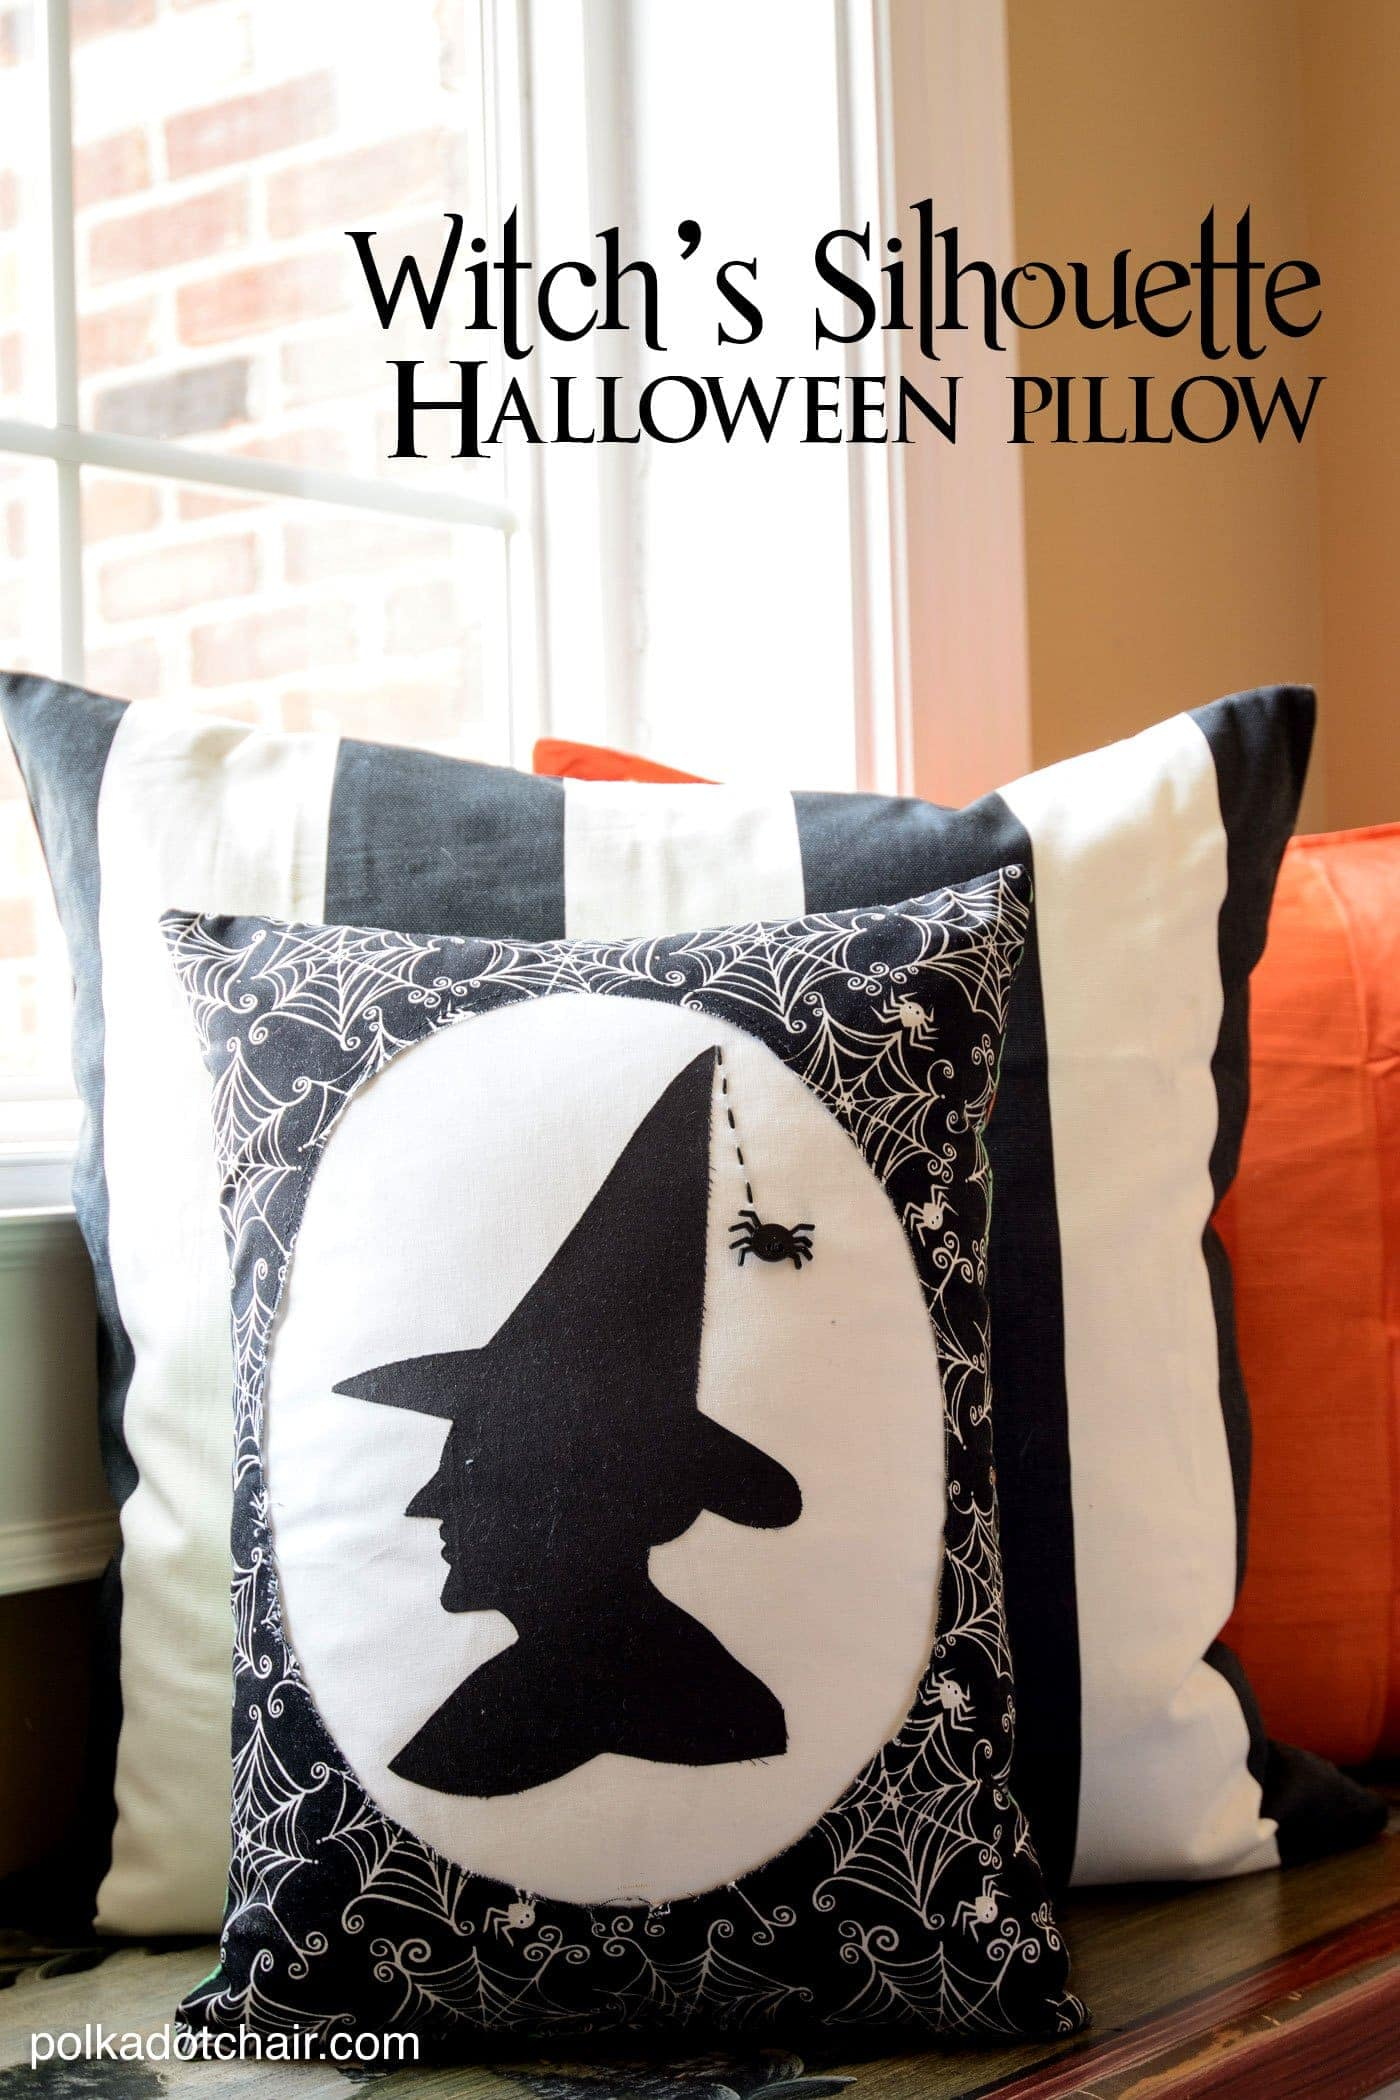 Witchs Silhouette Halloween Pillow Free Sewing Pattern